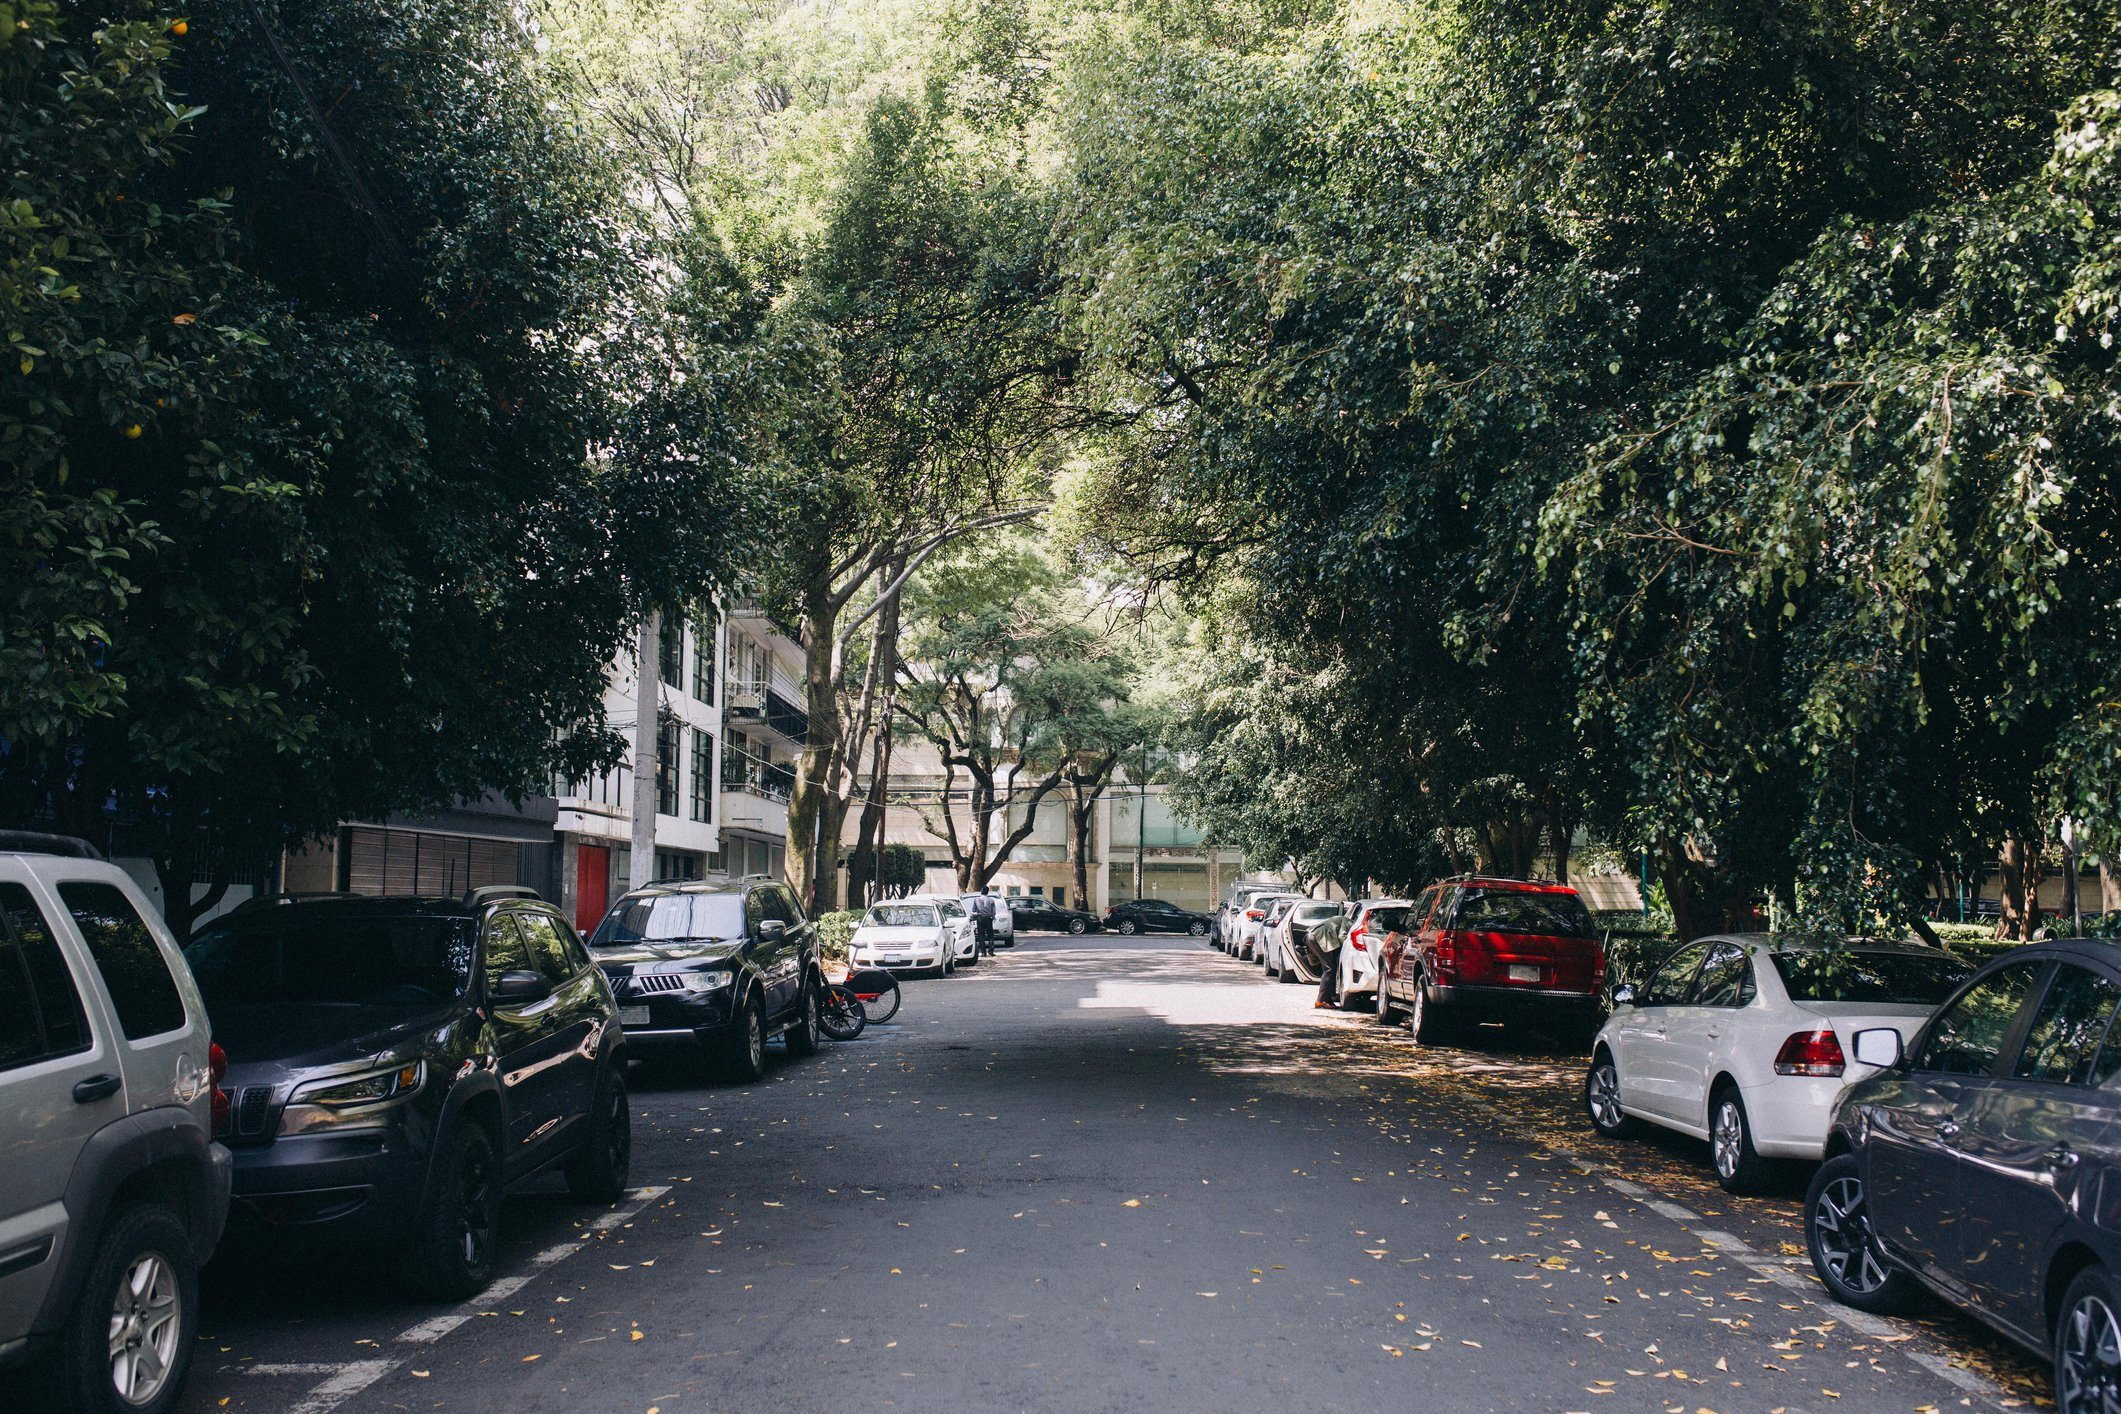 Street lined with cars and trees in Mexico City, Mexico